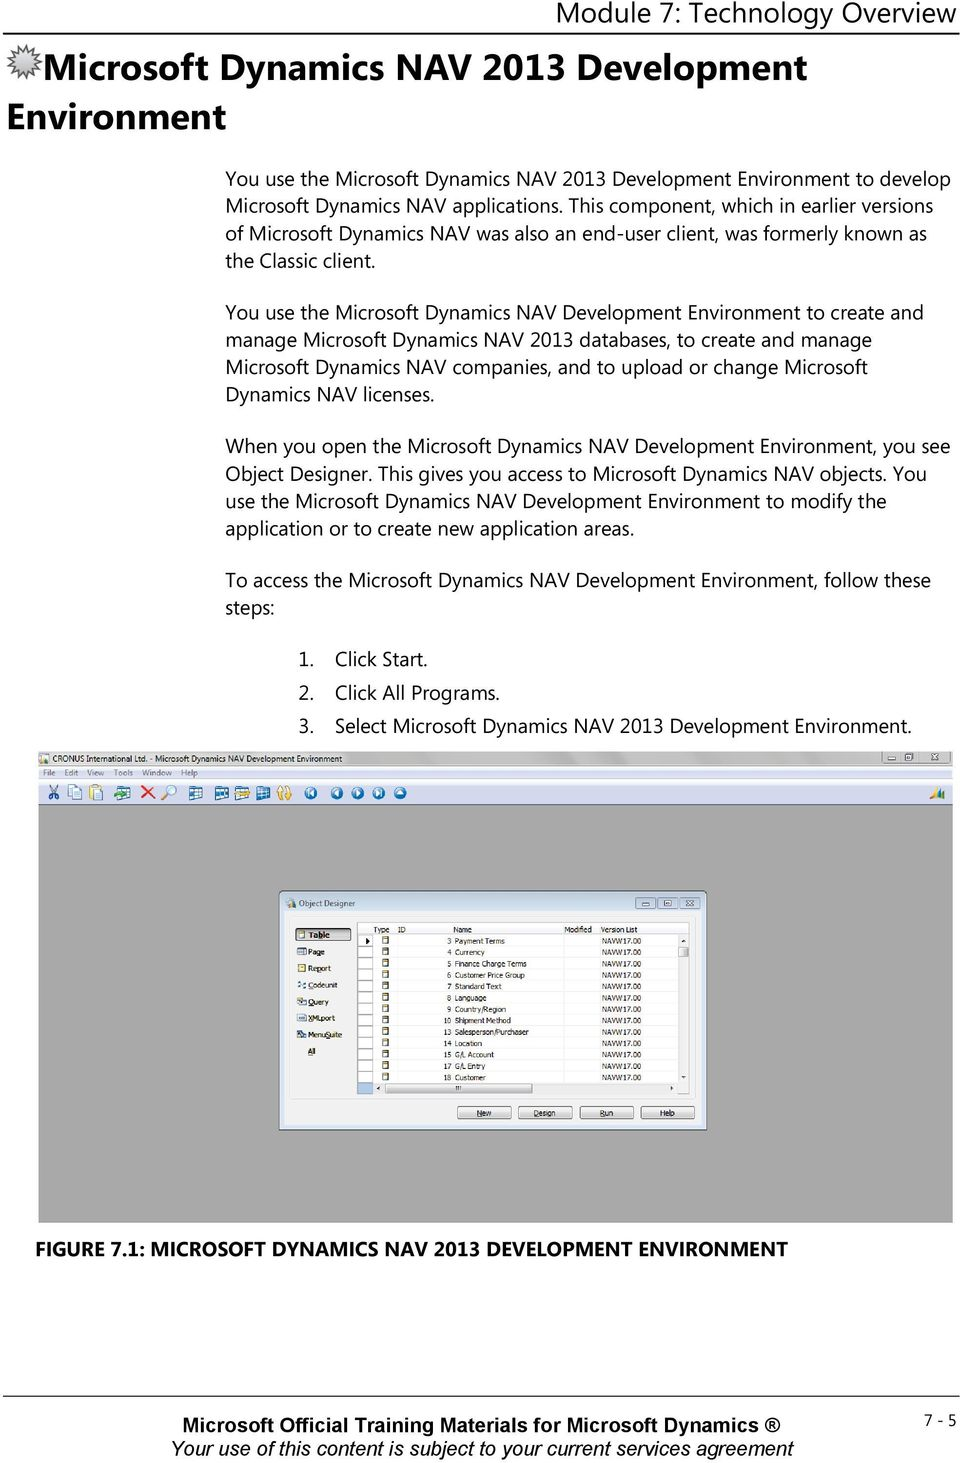 You use the Microsoft Dynamics NAV Development Environment to create and manage Microsoft Dynamics NAV 2013 databases, to create and manage Microsoft Dynamics NAV companies, and to upload or change